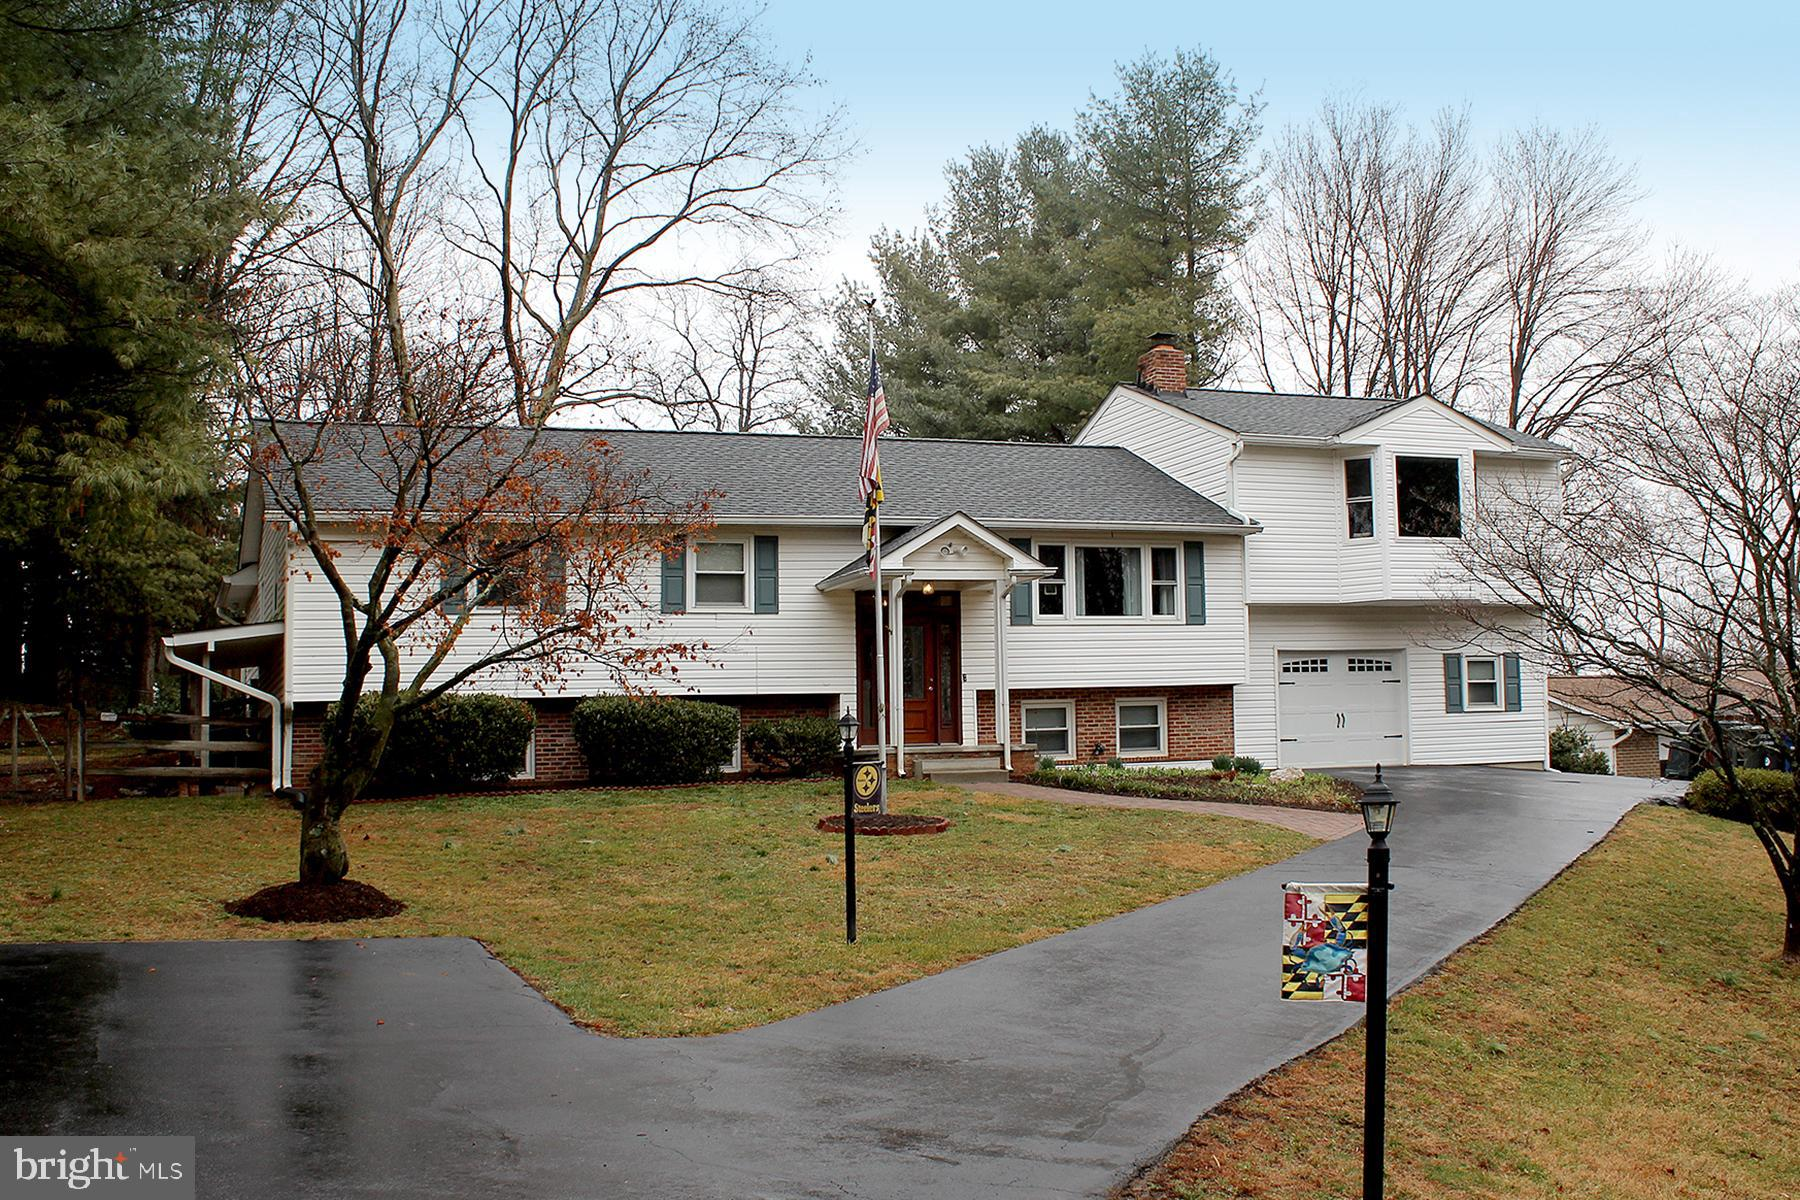 9825 MOYER ROAD, DAMASCUS, MD 20872